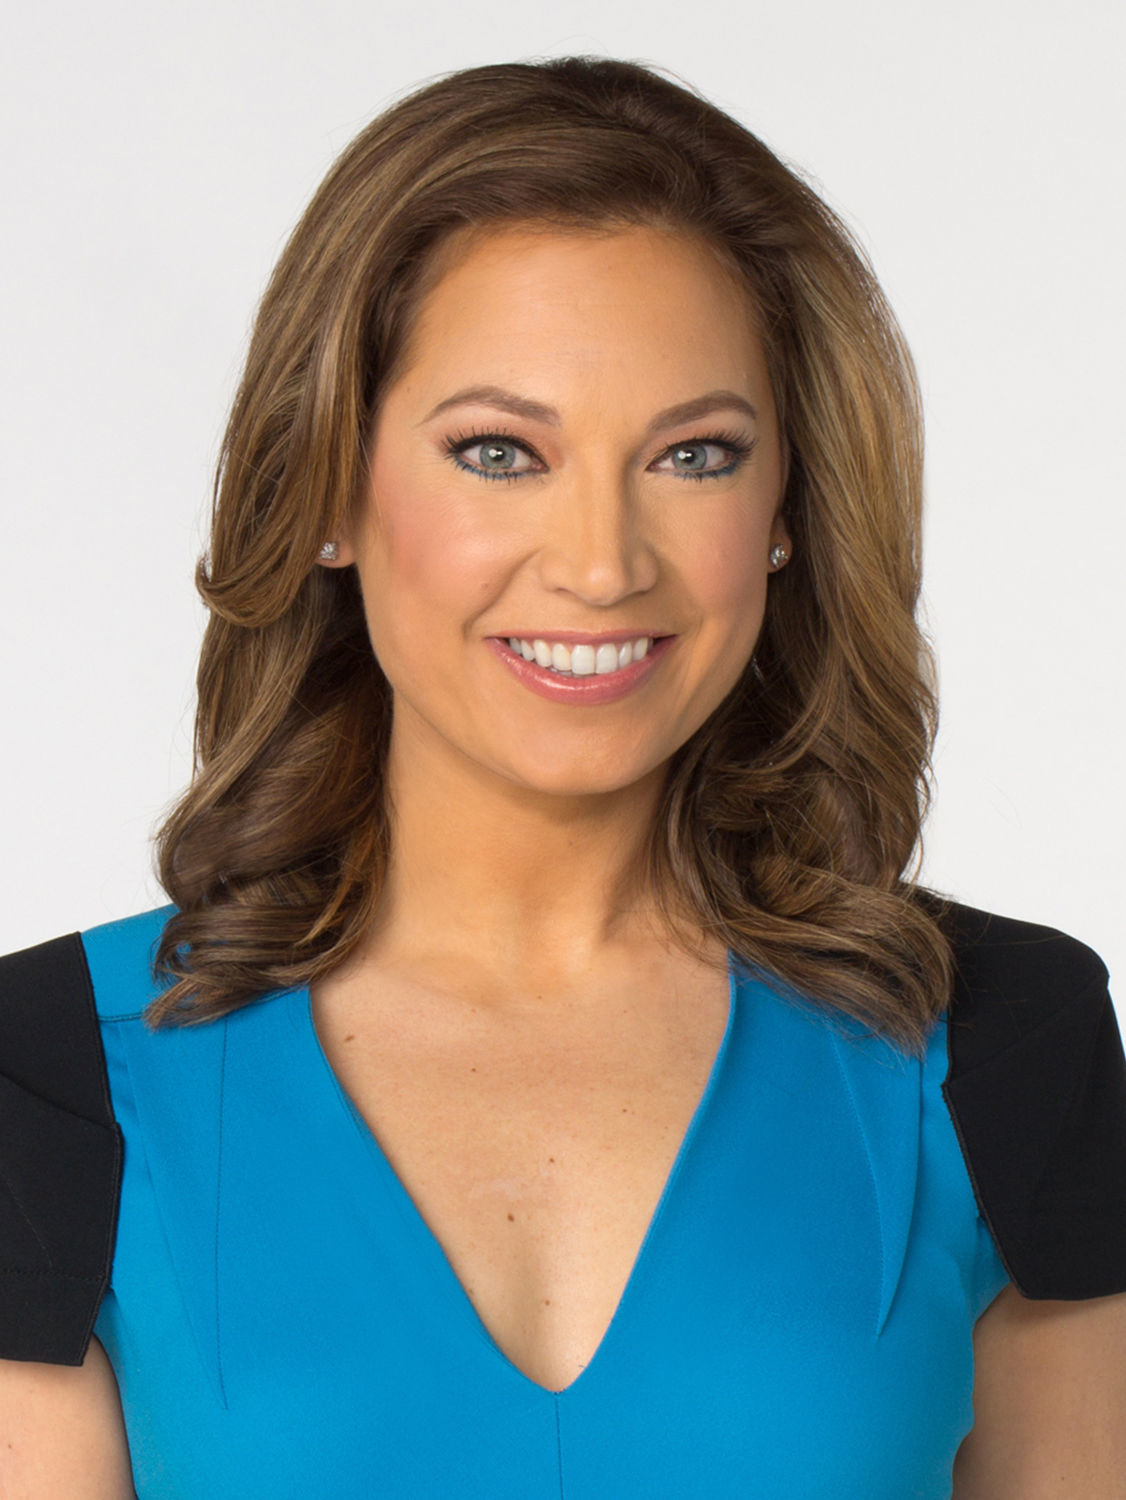 'Good Morning America' meteorologist Ginger Zee announces pregnancy -  Chicago Tribune